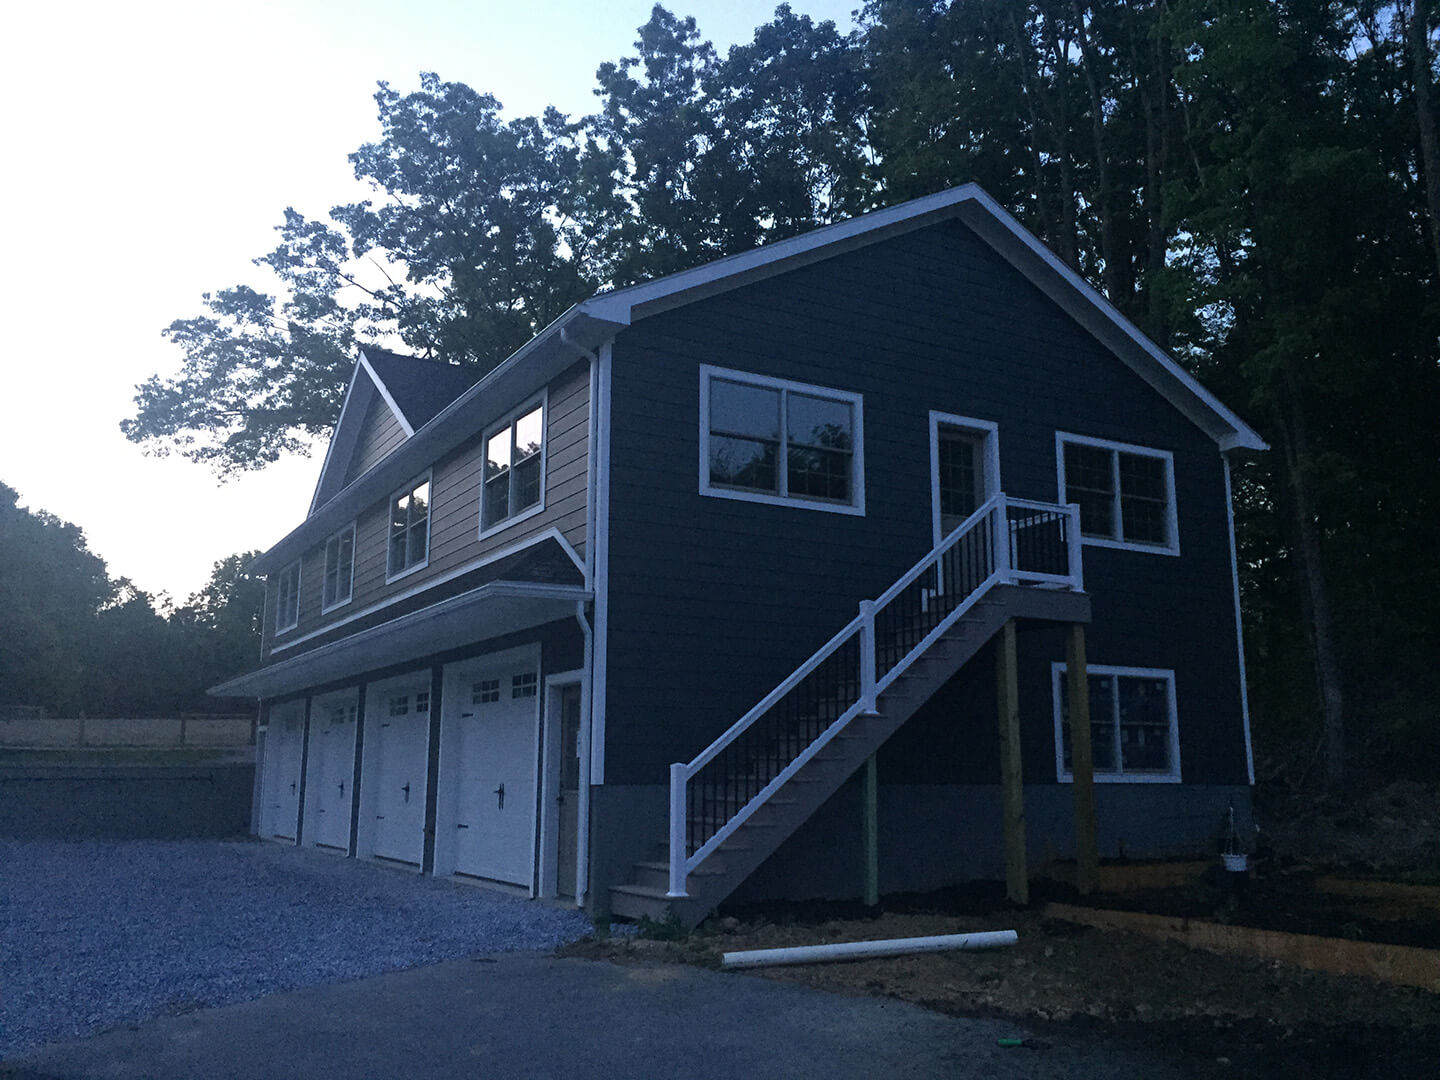 4 Car Garage with Fiber Cement Siding